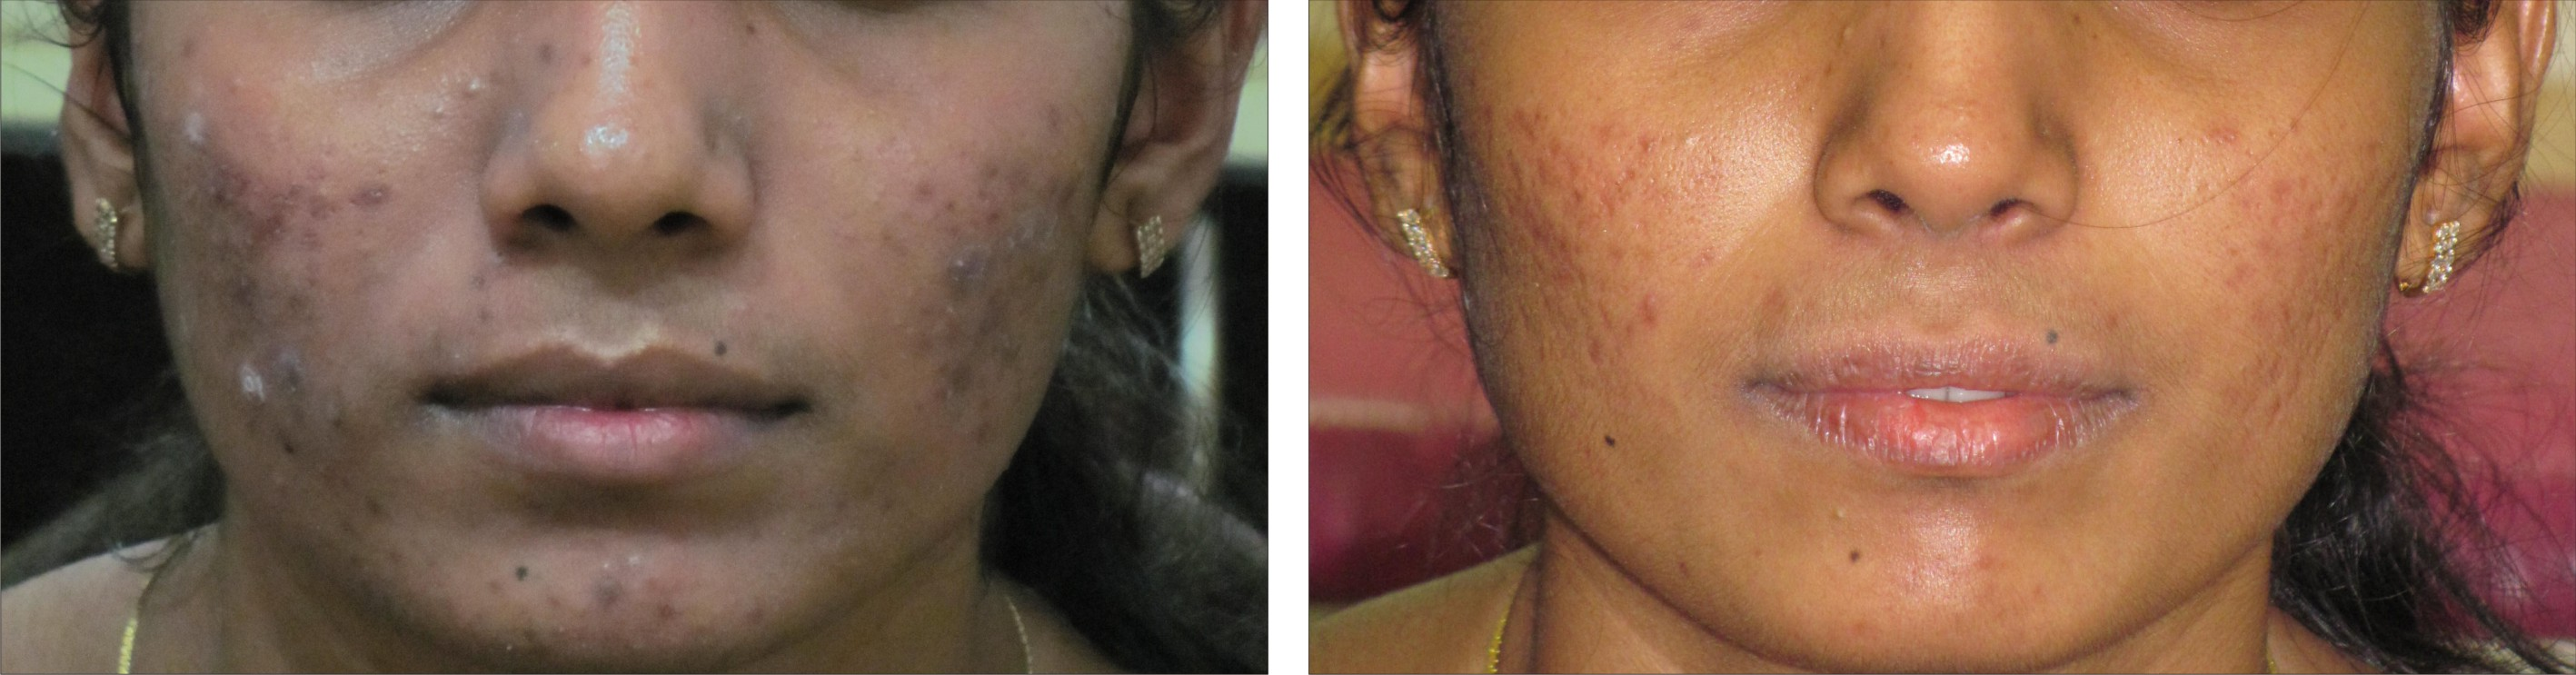 Chemical Peel Image One